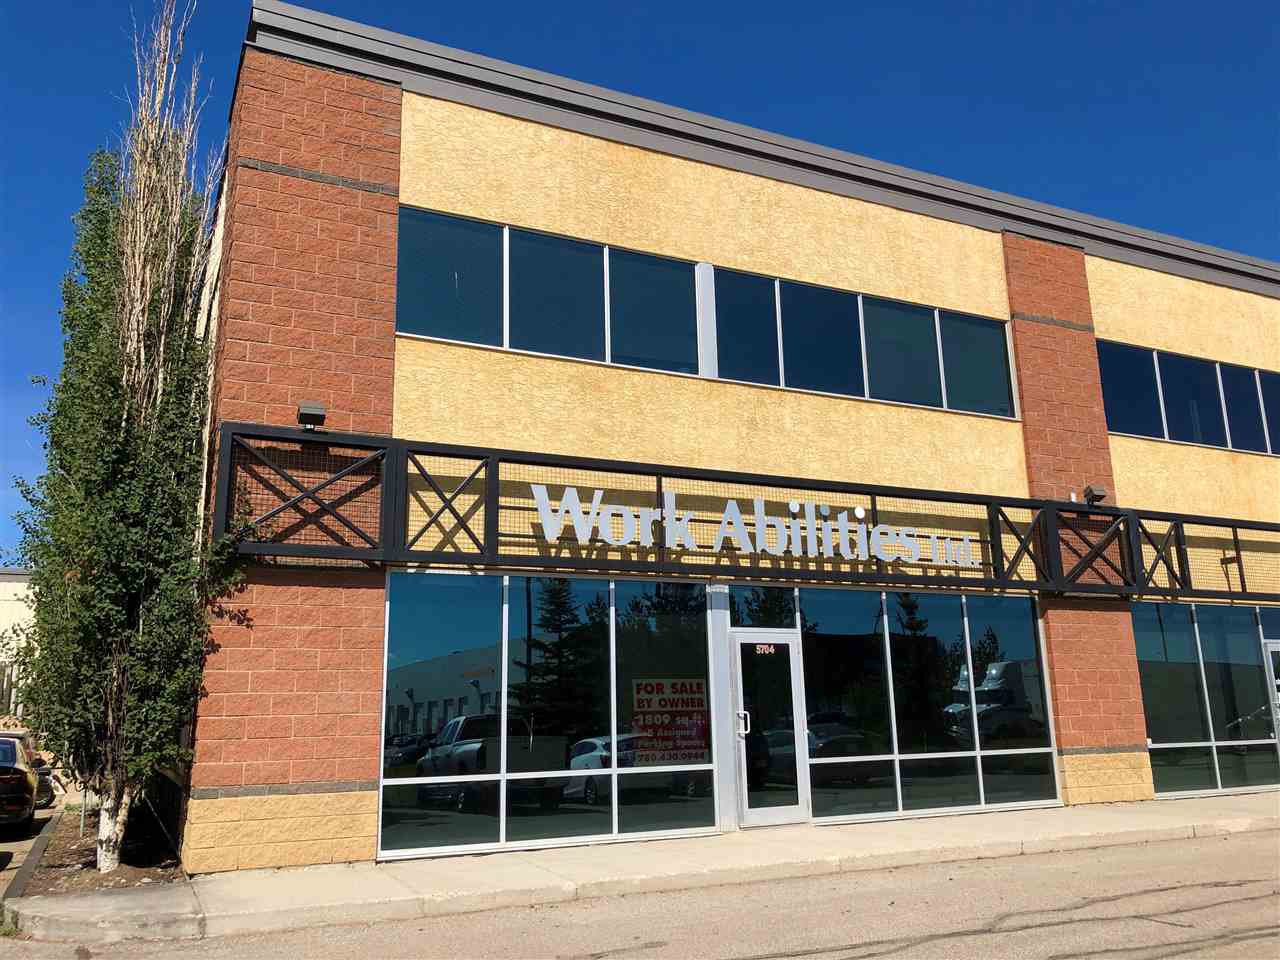 Main Photo: 5704 72 Street in Edmonton: Zone 41 Office for sale or lease : MLS®# E4185499